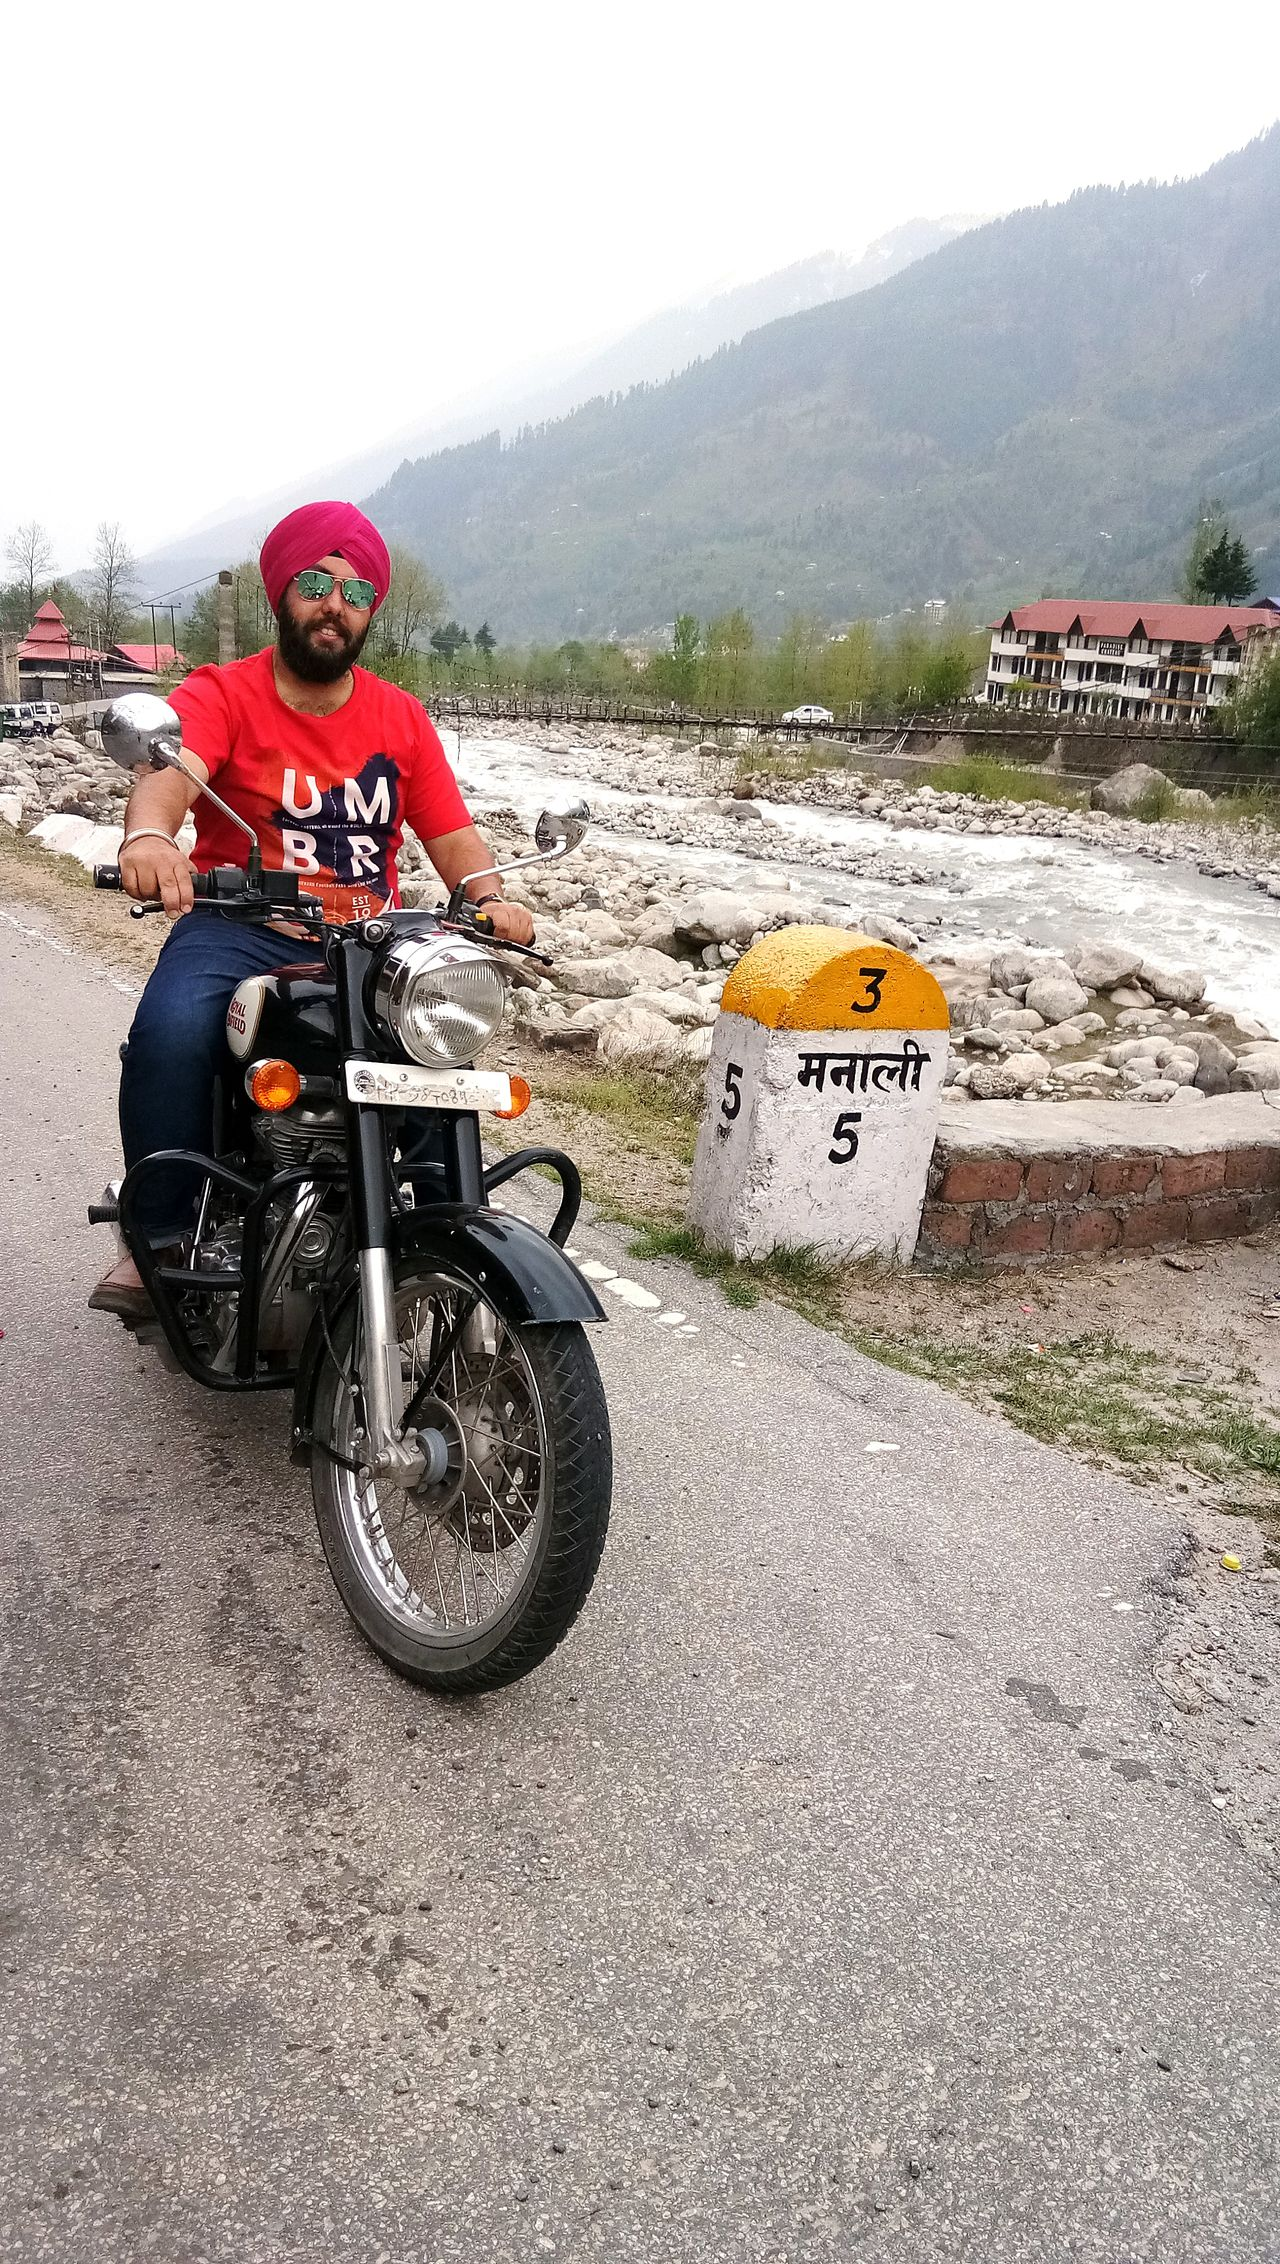 EyeEmNewHere Himachaldiaries HoneymoonDestinations Bulletride Adventure Mountains And Valleys Empty Streets Longrideswithher Singh Sardari Turbanandbeard